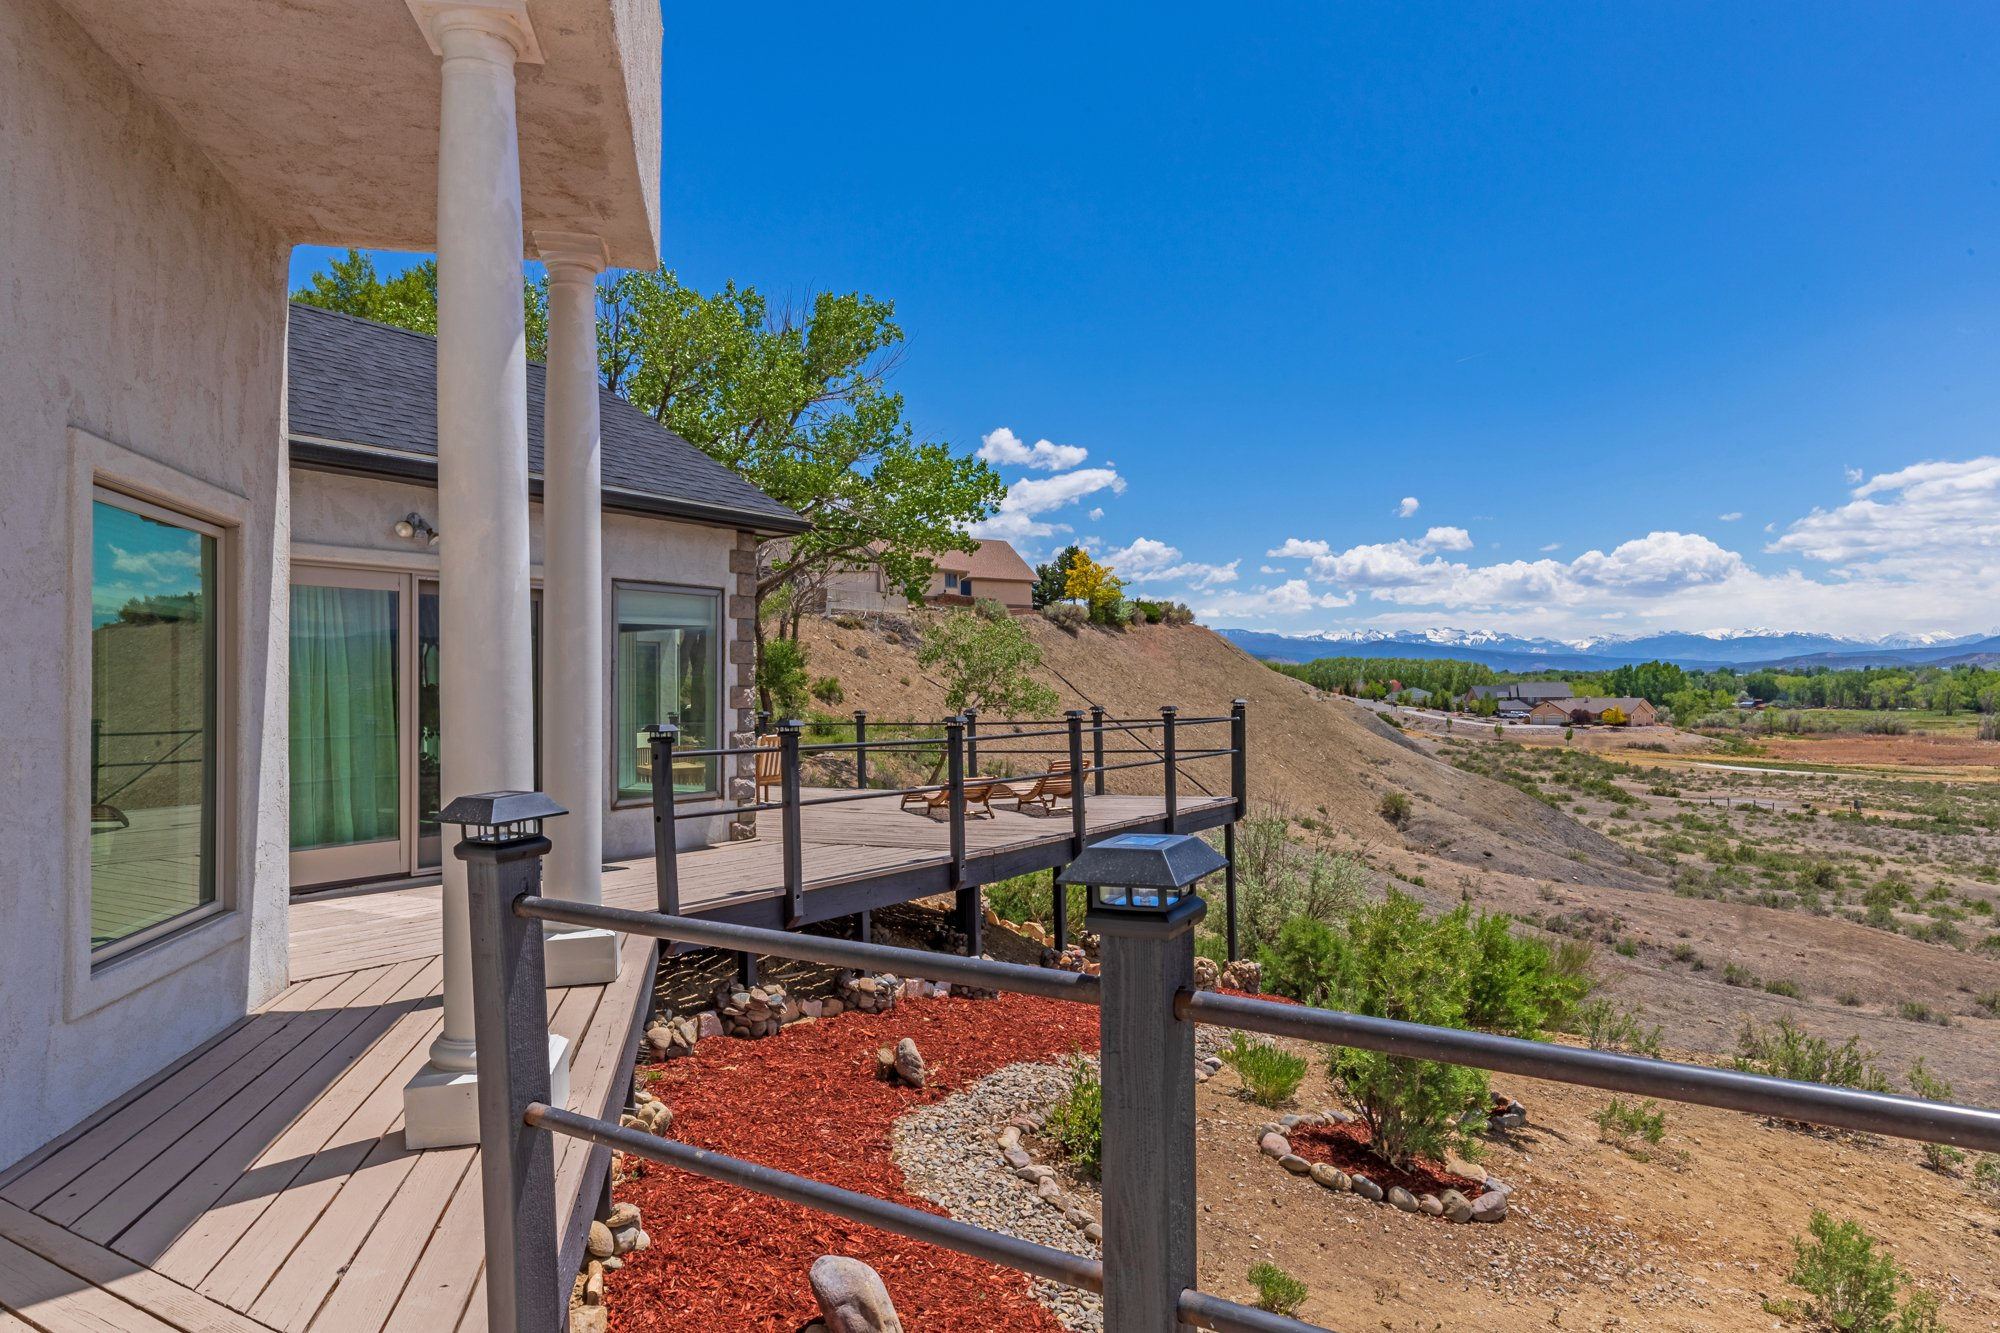 Back Deck with Landscaping - 16955 Wildwood Dr. Montrose, CO 81403 - Atha Team Luxury Real Estate